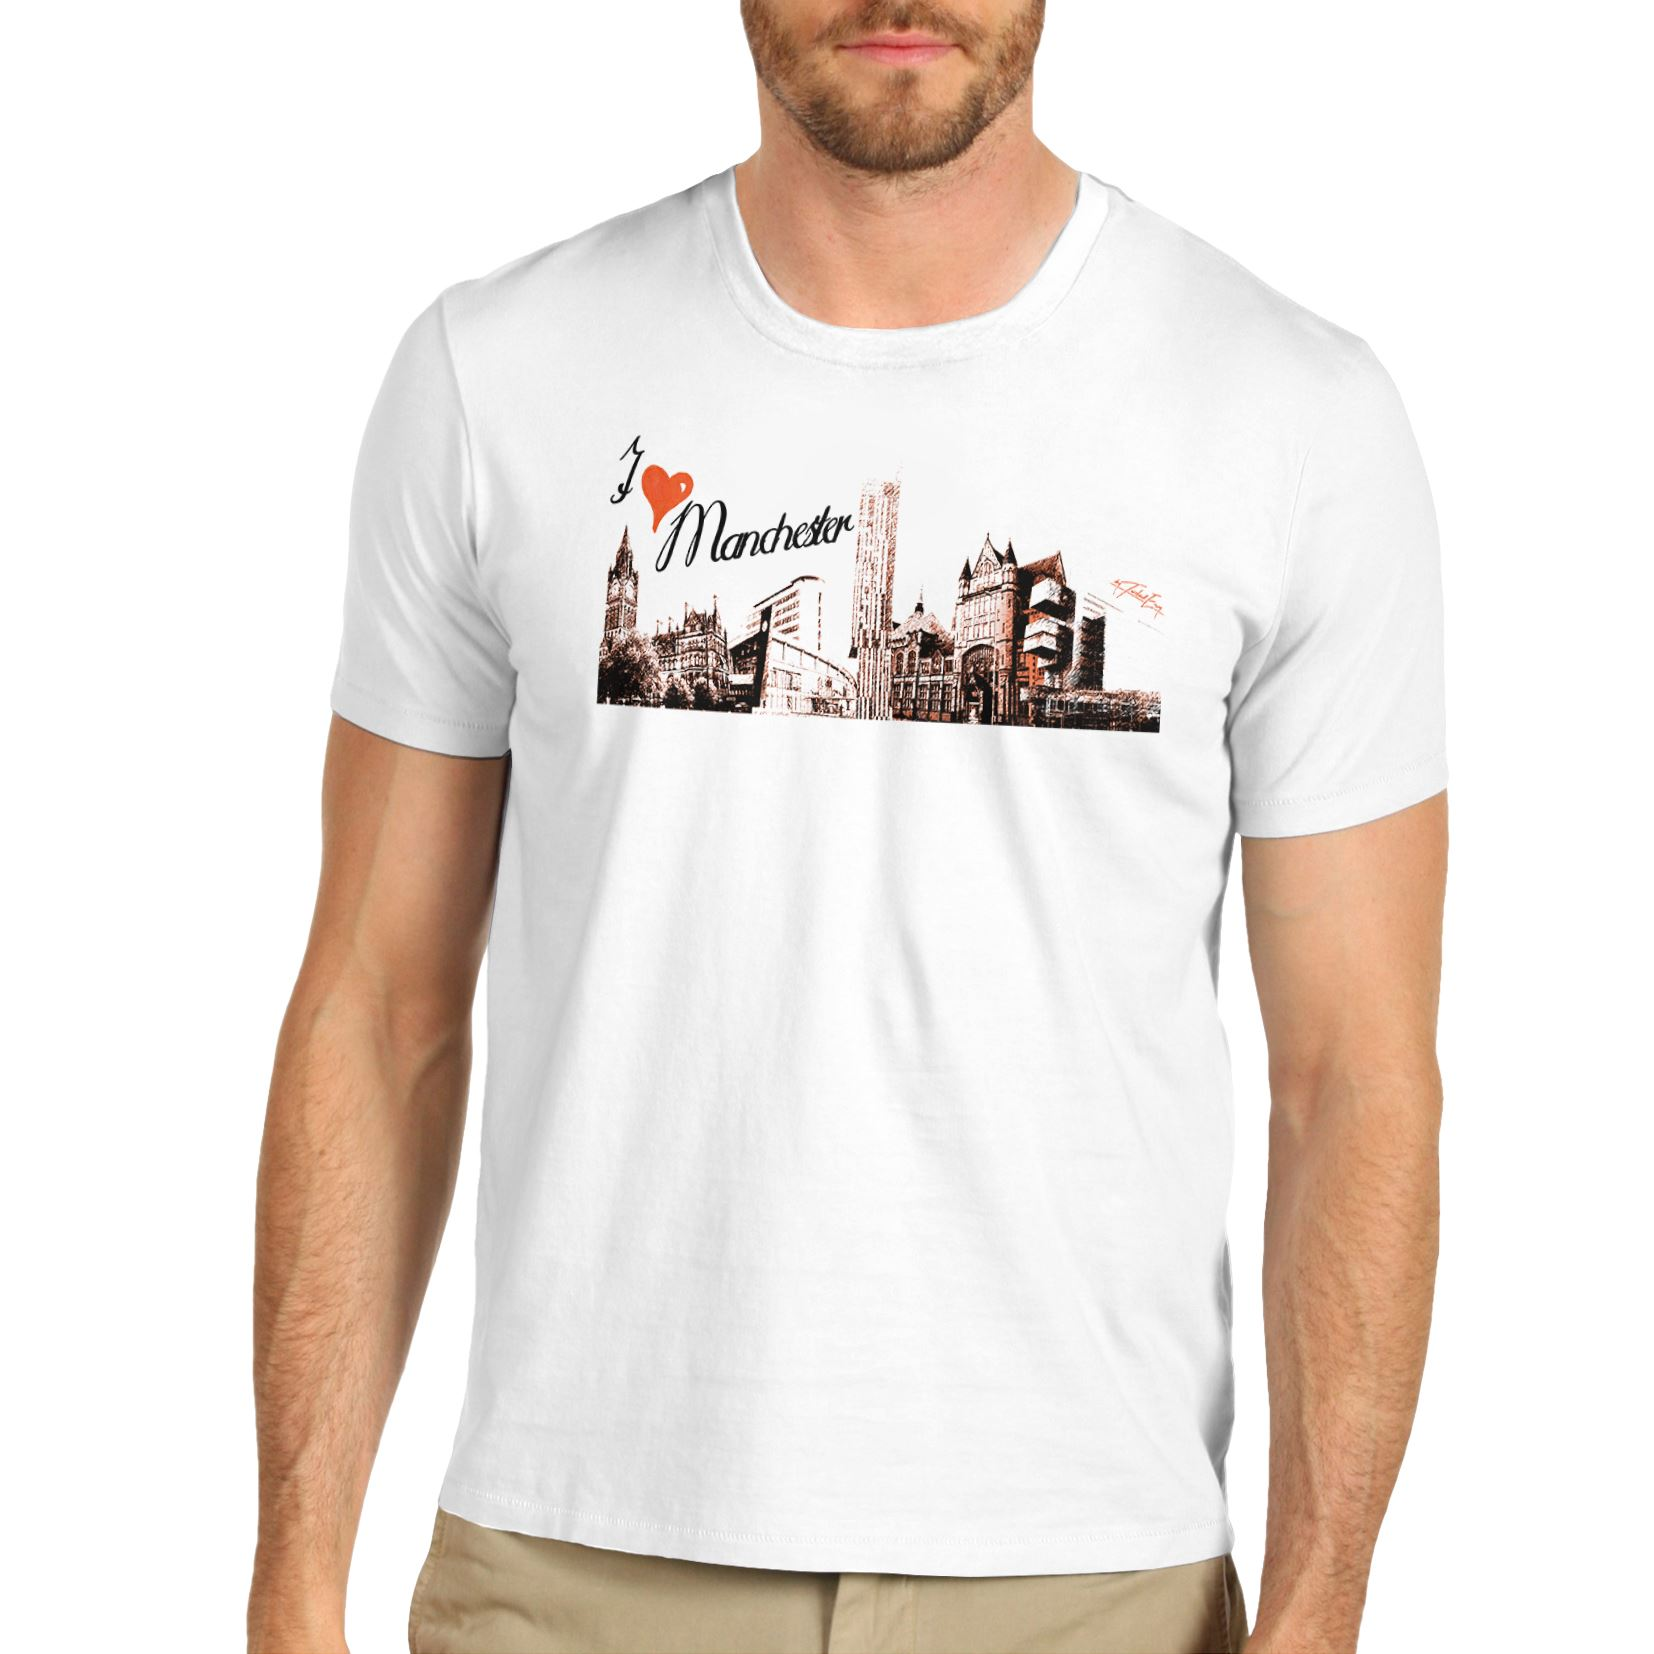 Design your t shirt and sell - Design Your Own T Shirt And Sell Online T Shirt Manchester Design Your Own Download